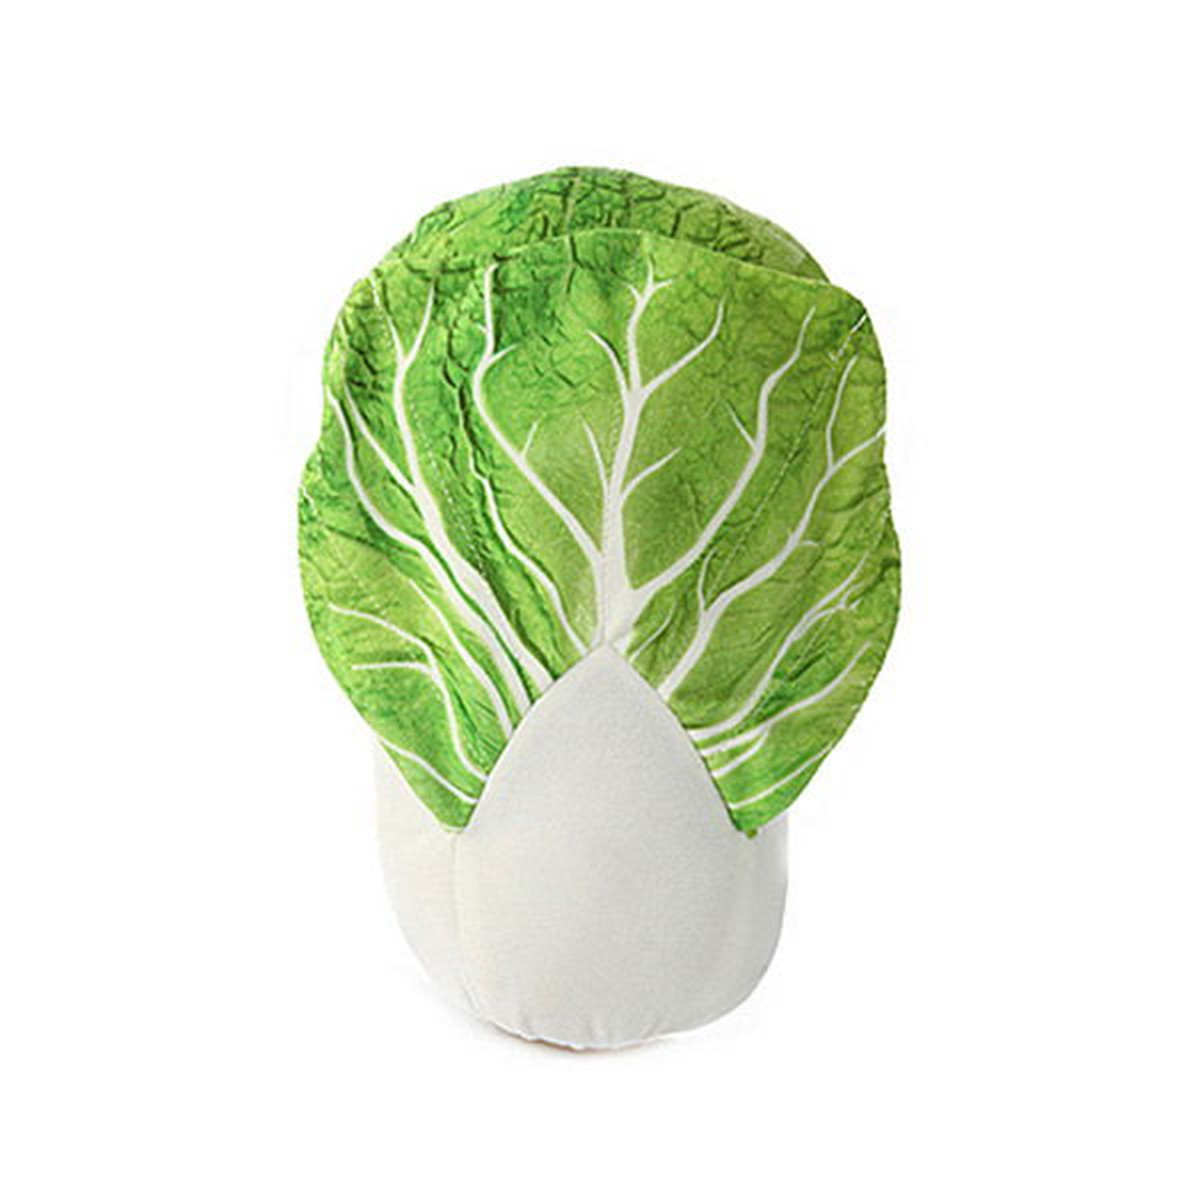 New Simulation Vegetable Back Cushion Novel 3D Cabbage Throw Pillows Tricky Handwork Cushions Home Car Supplies 30x20cm(China (Mainland))